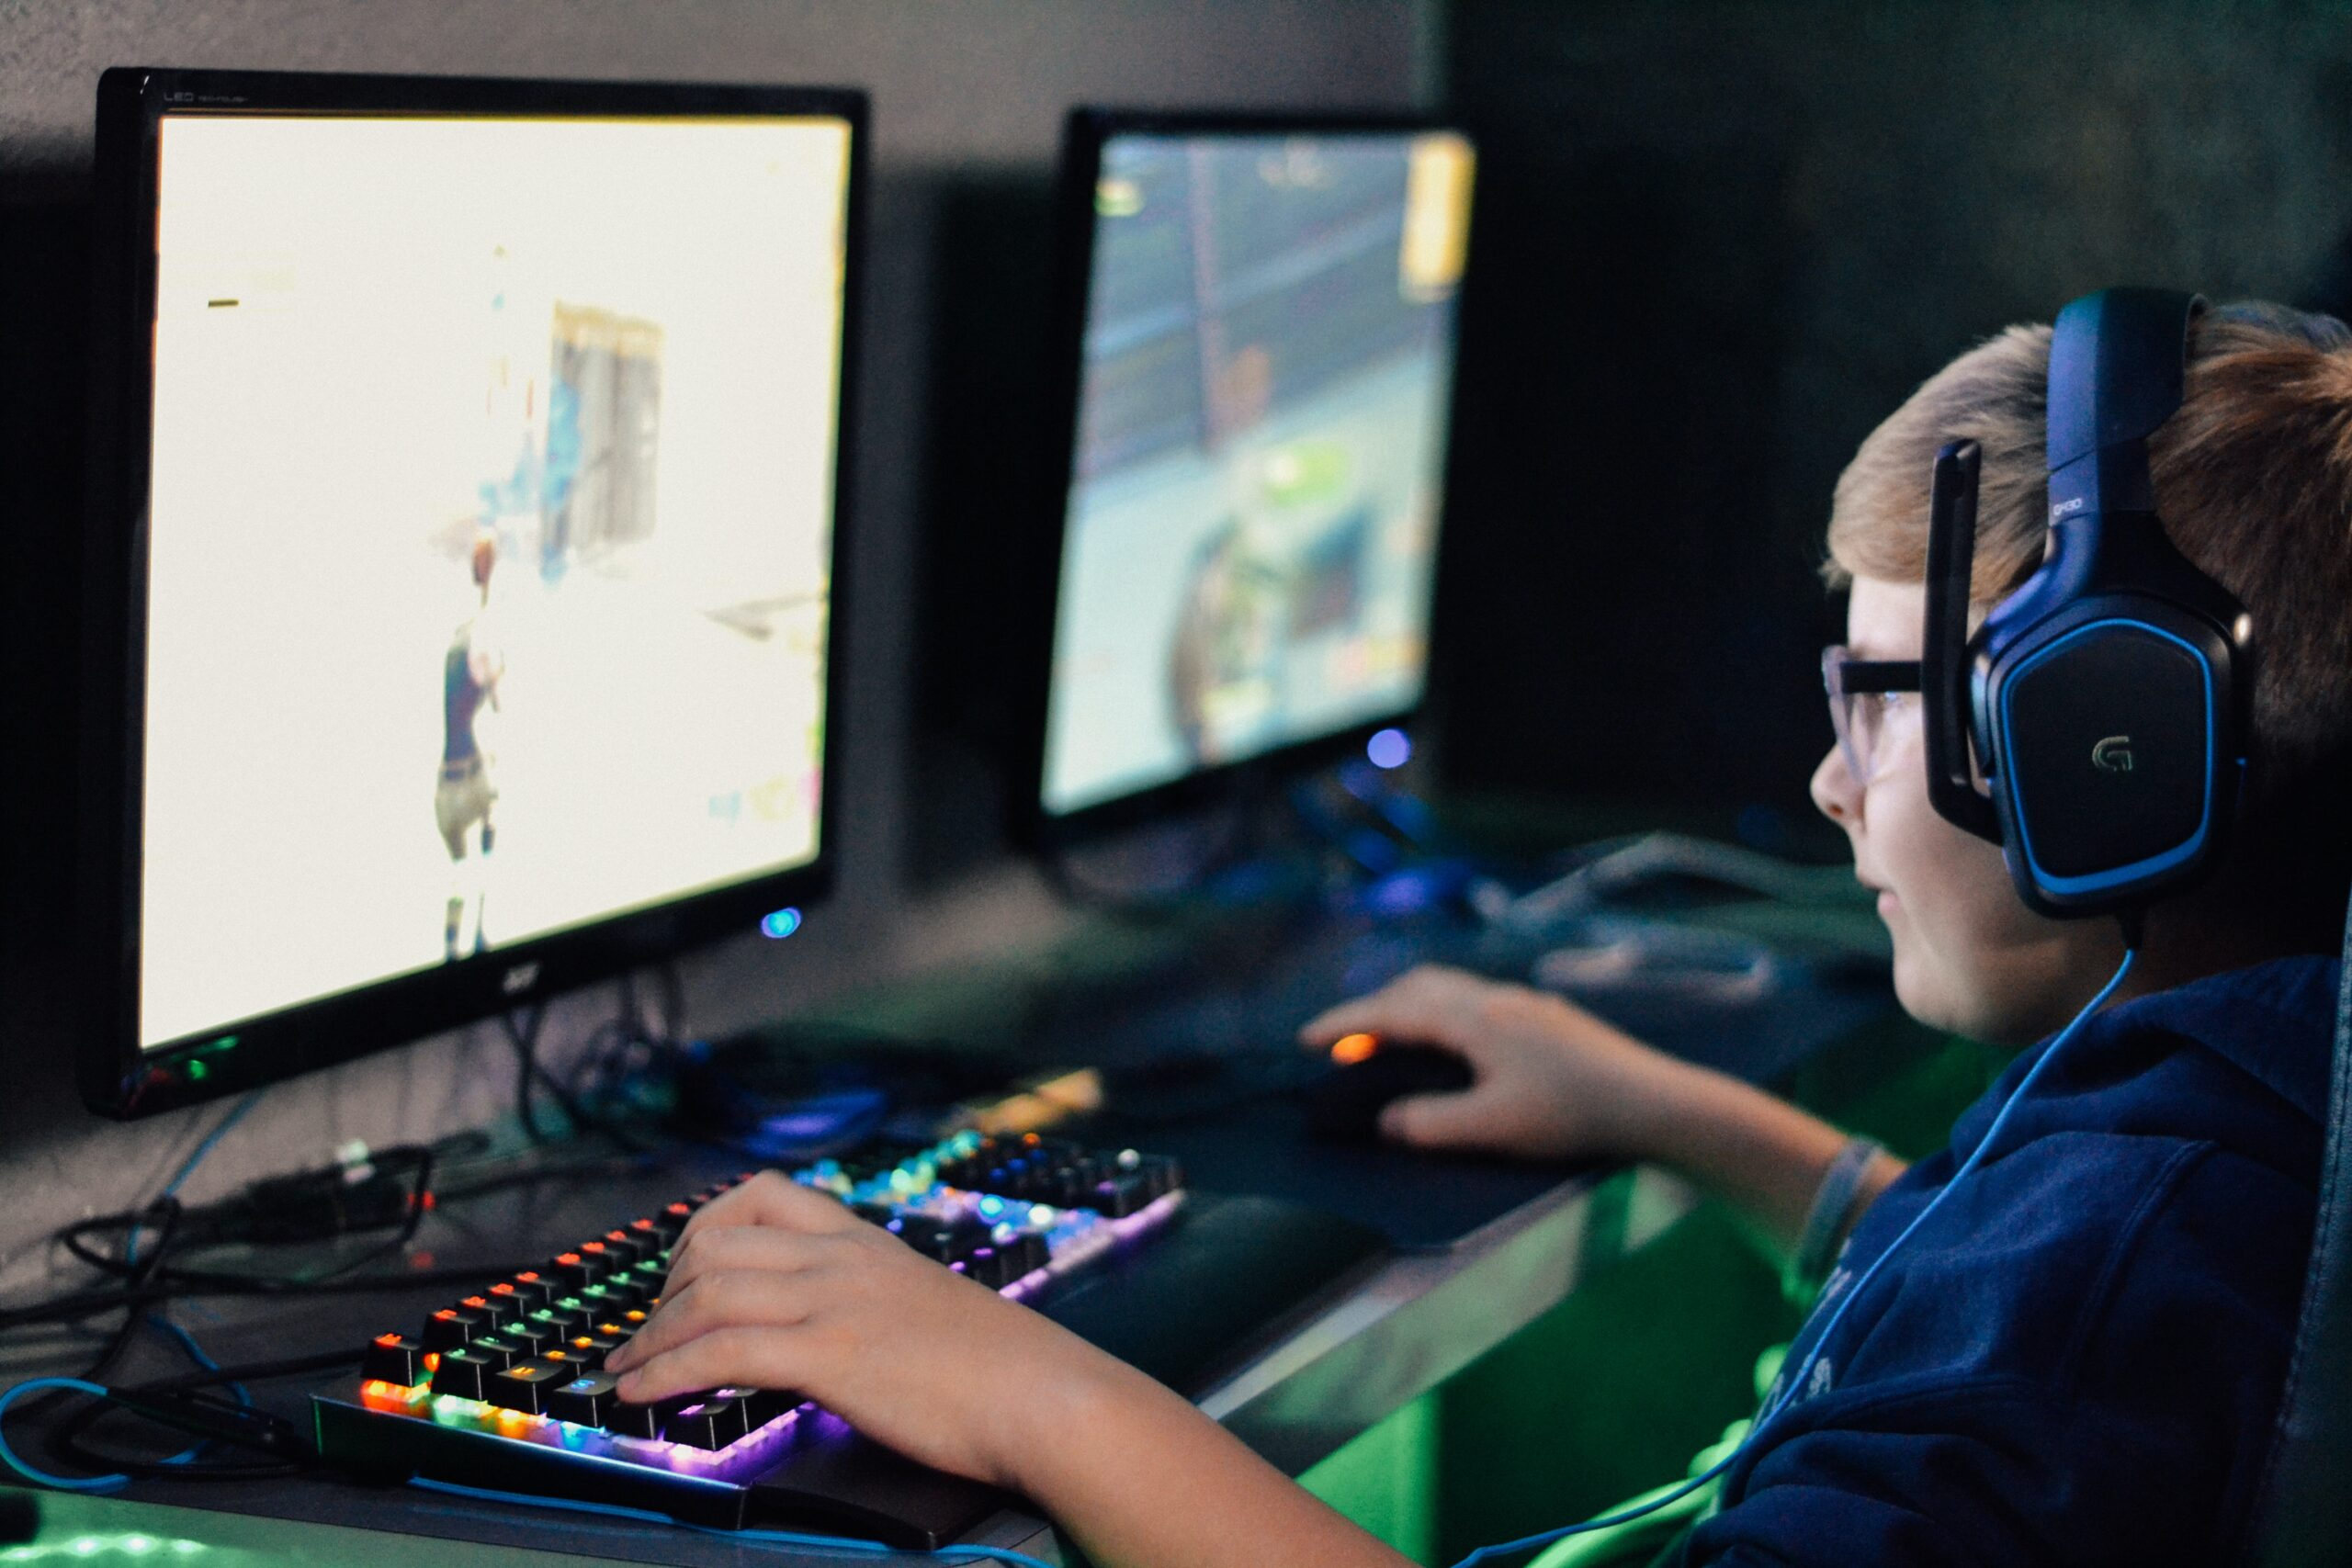 boy wearing headset playing computer game